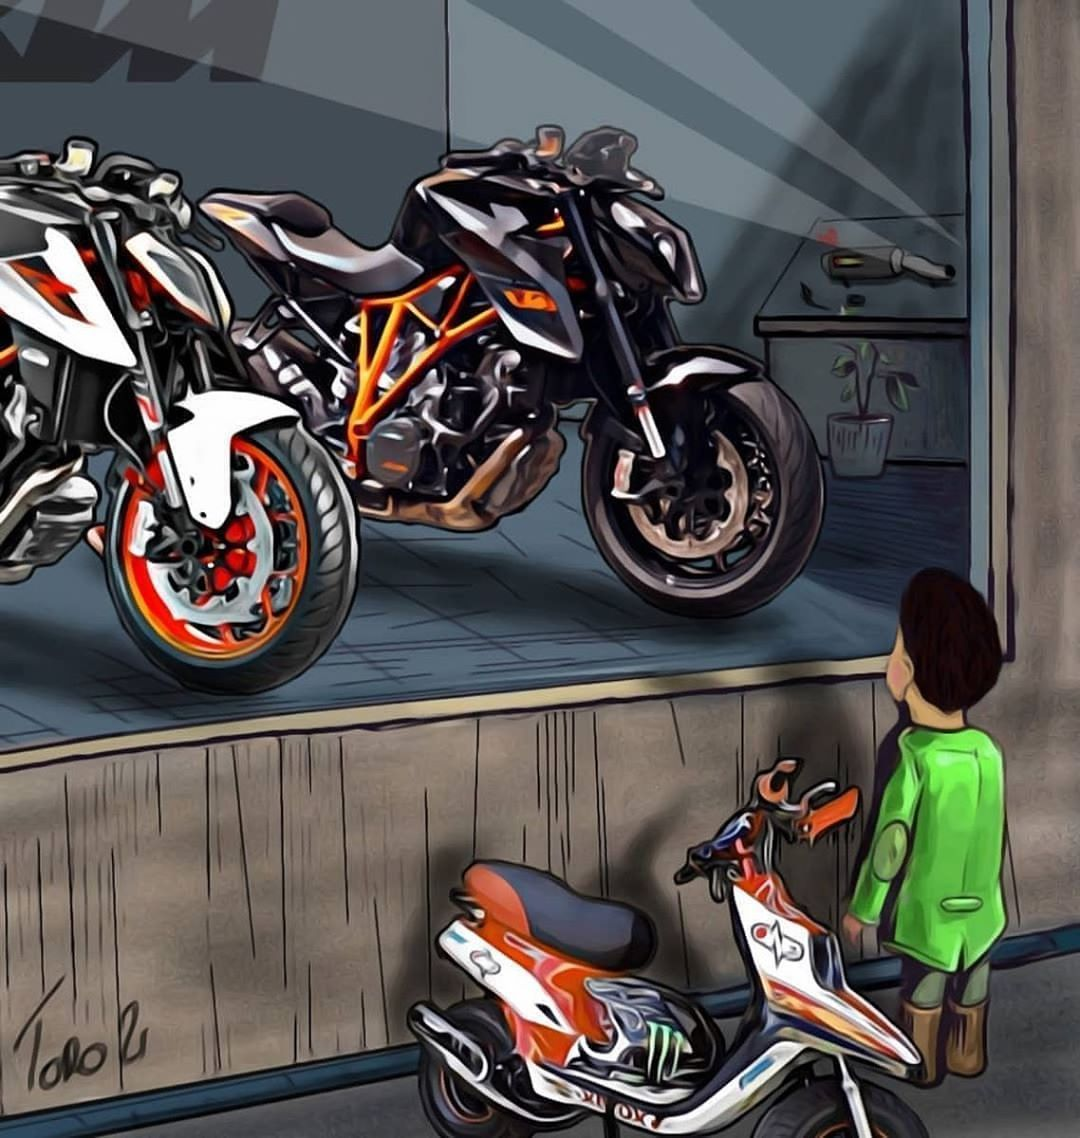 Pin By Raul On Moto With Images Bike Drawing Ktm Bike Riding